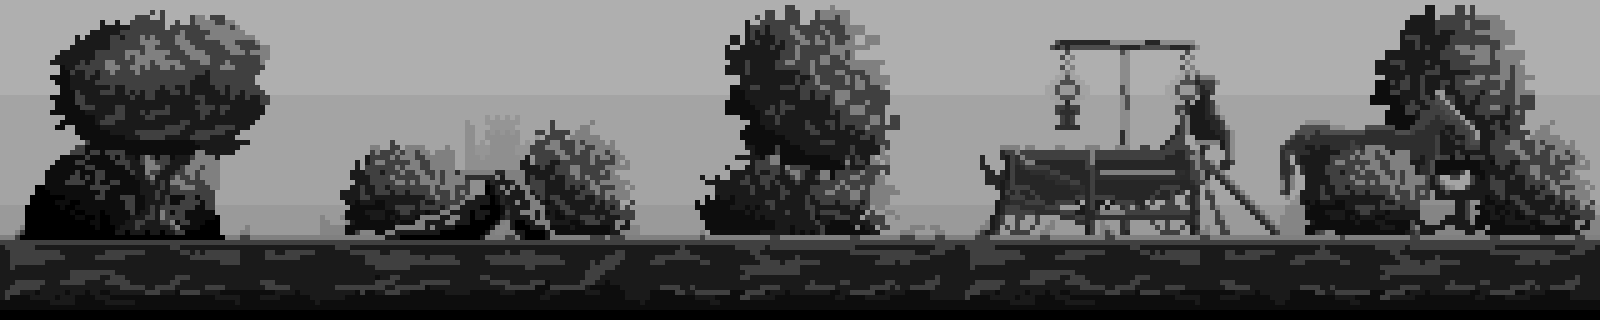 Black and White Tileset.png